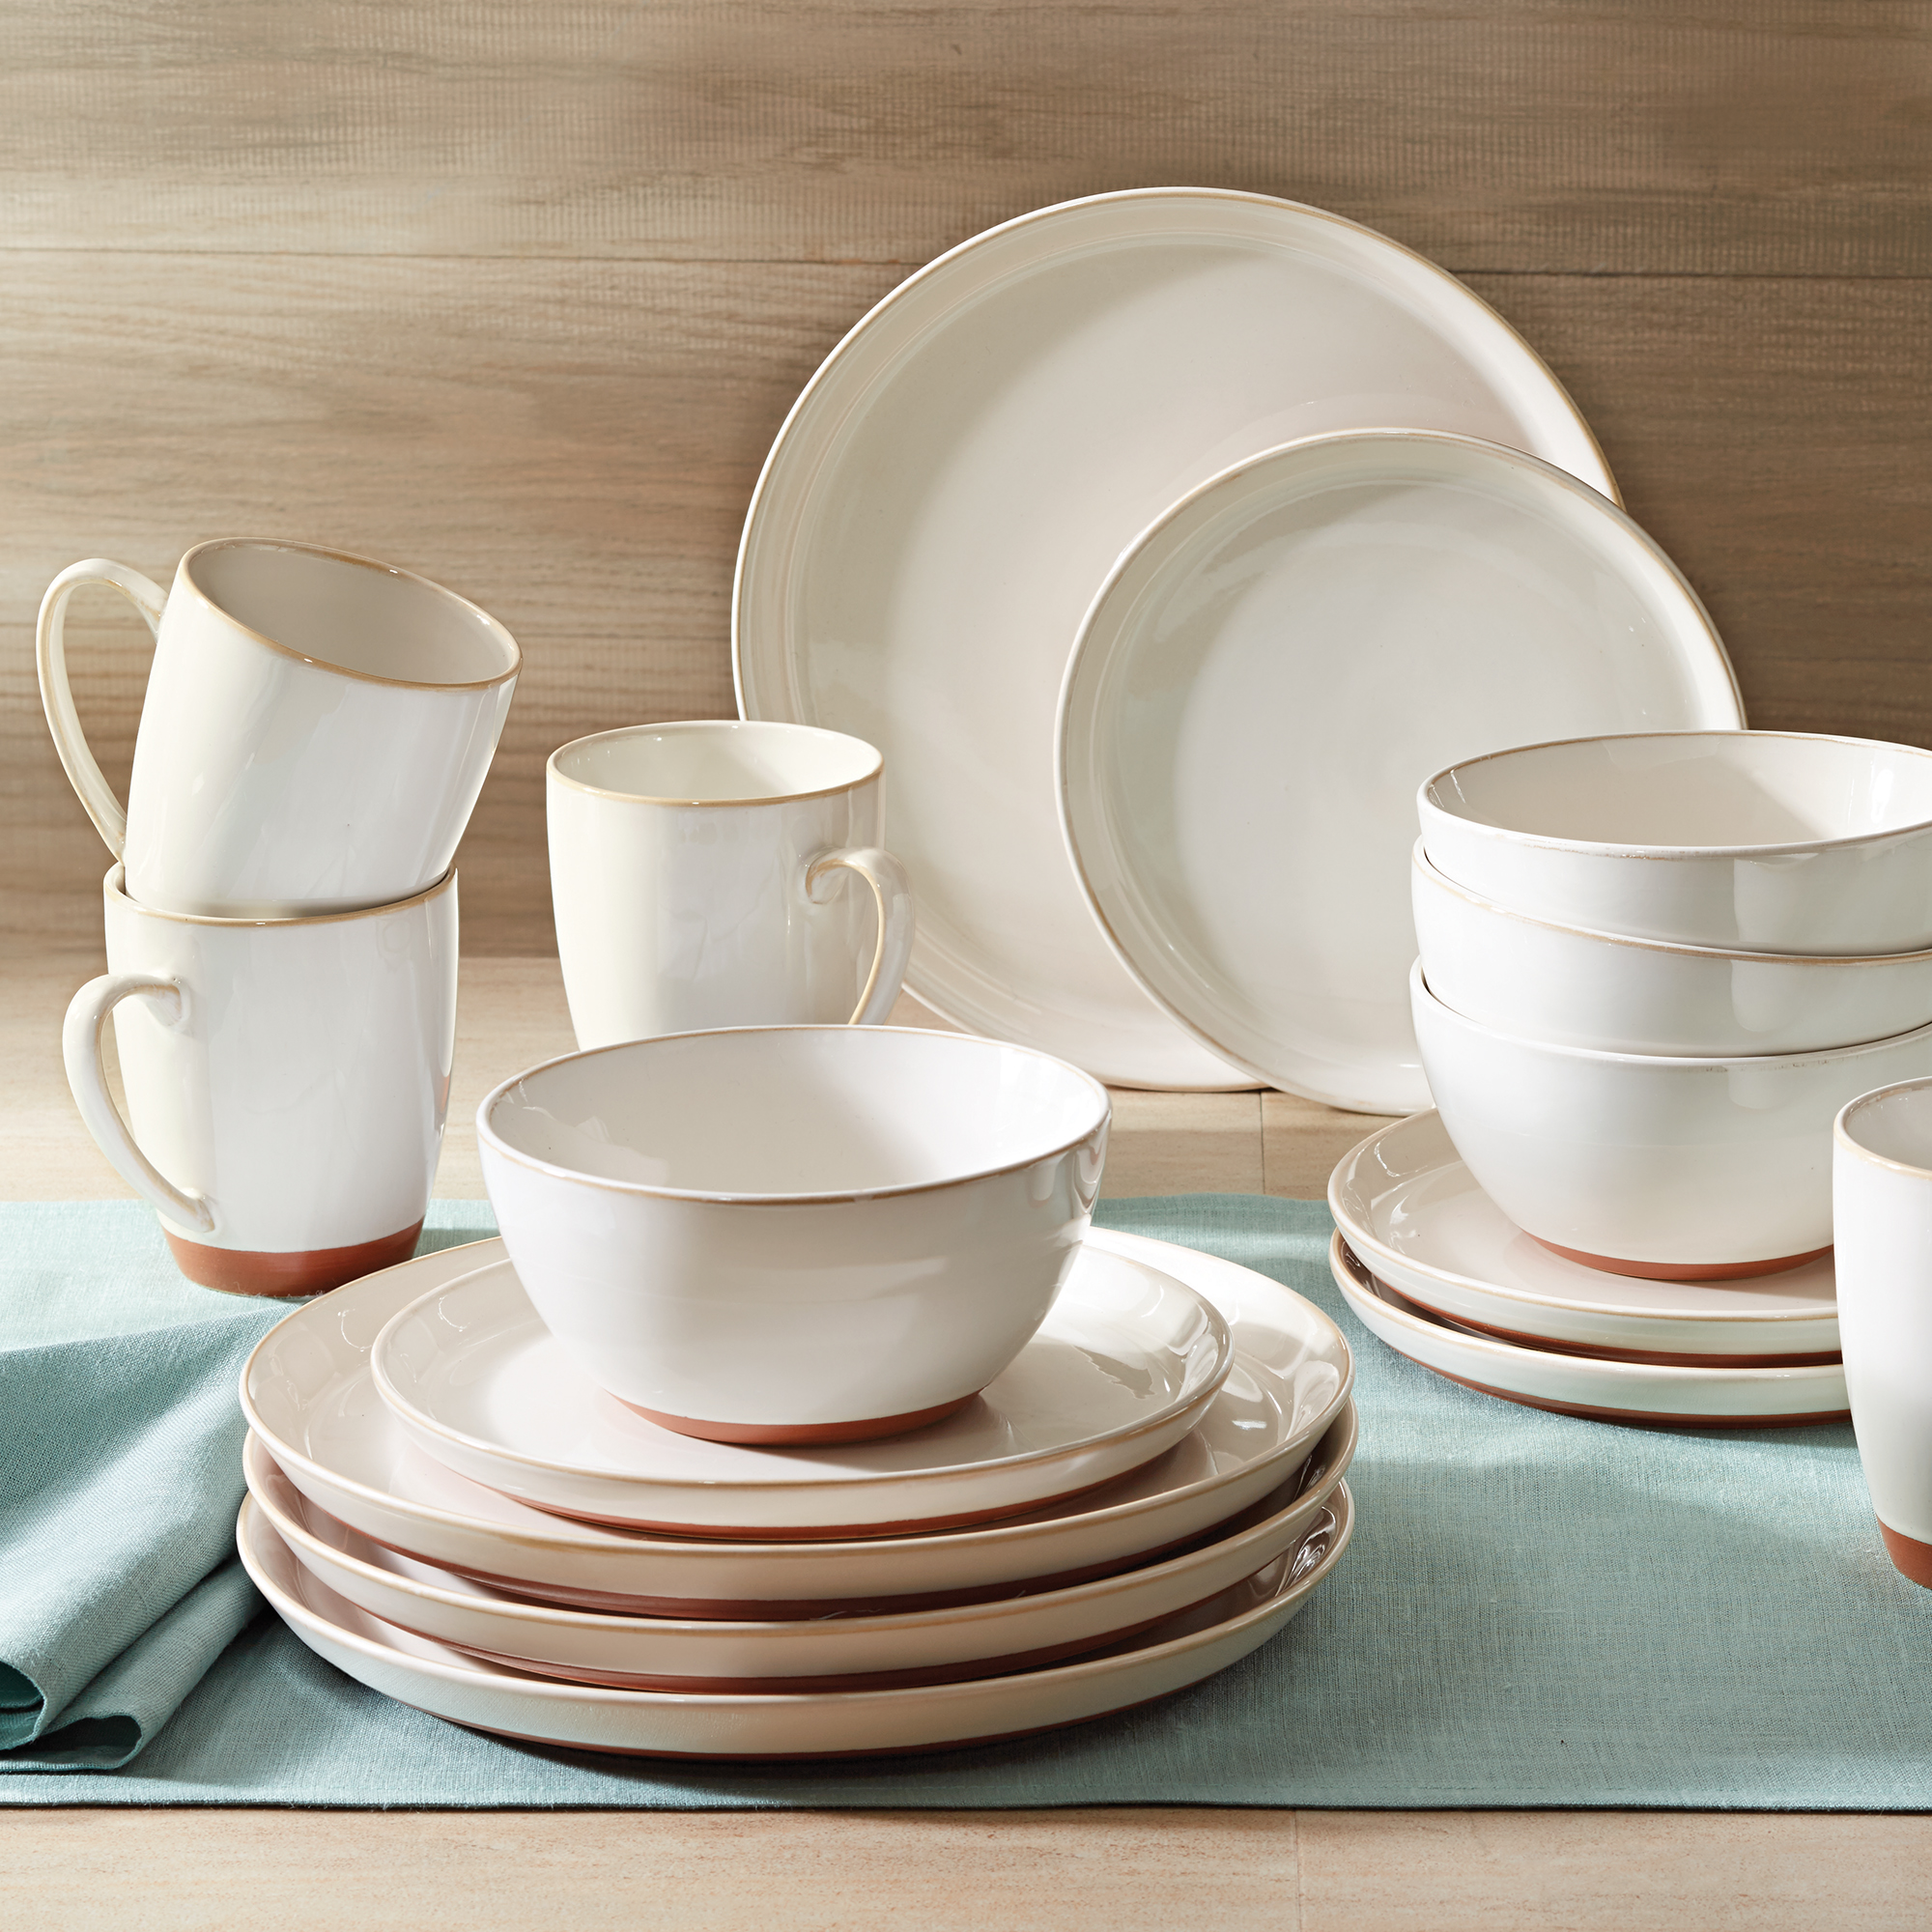 Better Homes and Gardens Claybrooke Cream Stoneware 16-Piece Dinnerware Set & Better Homes and Gardens Claybrooke Cream Stoneware 16-Piece ...